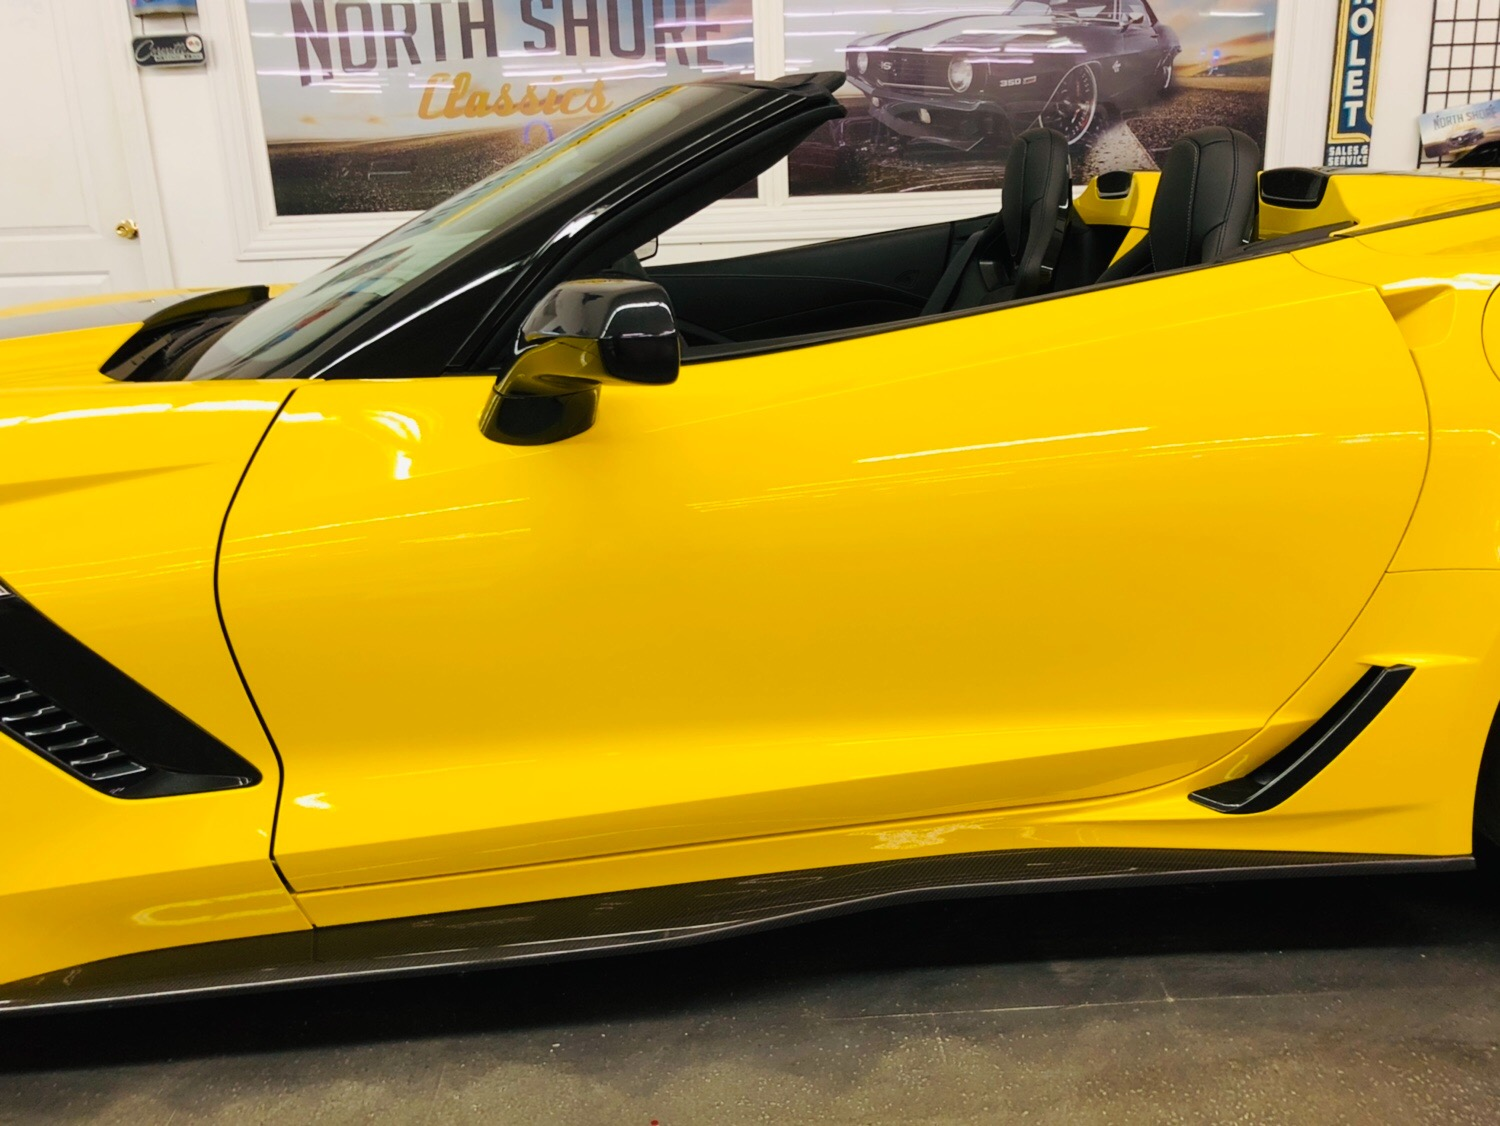 Used 2015 Chevrolet Corvette -Z06 SUPERCHARGED - PERFORMANCE TUNED NEARLY 800HP - SEE VIDEO | Mundelein, IL